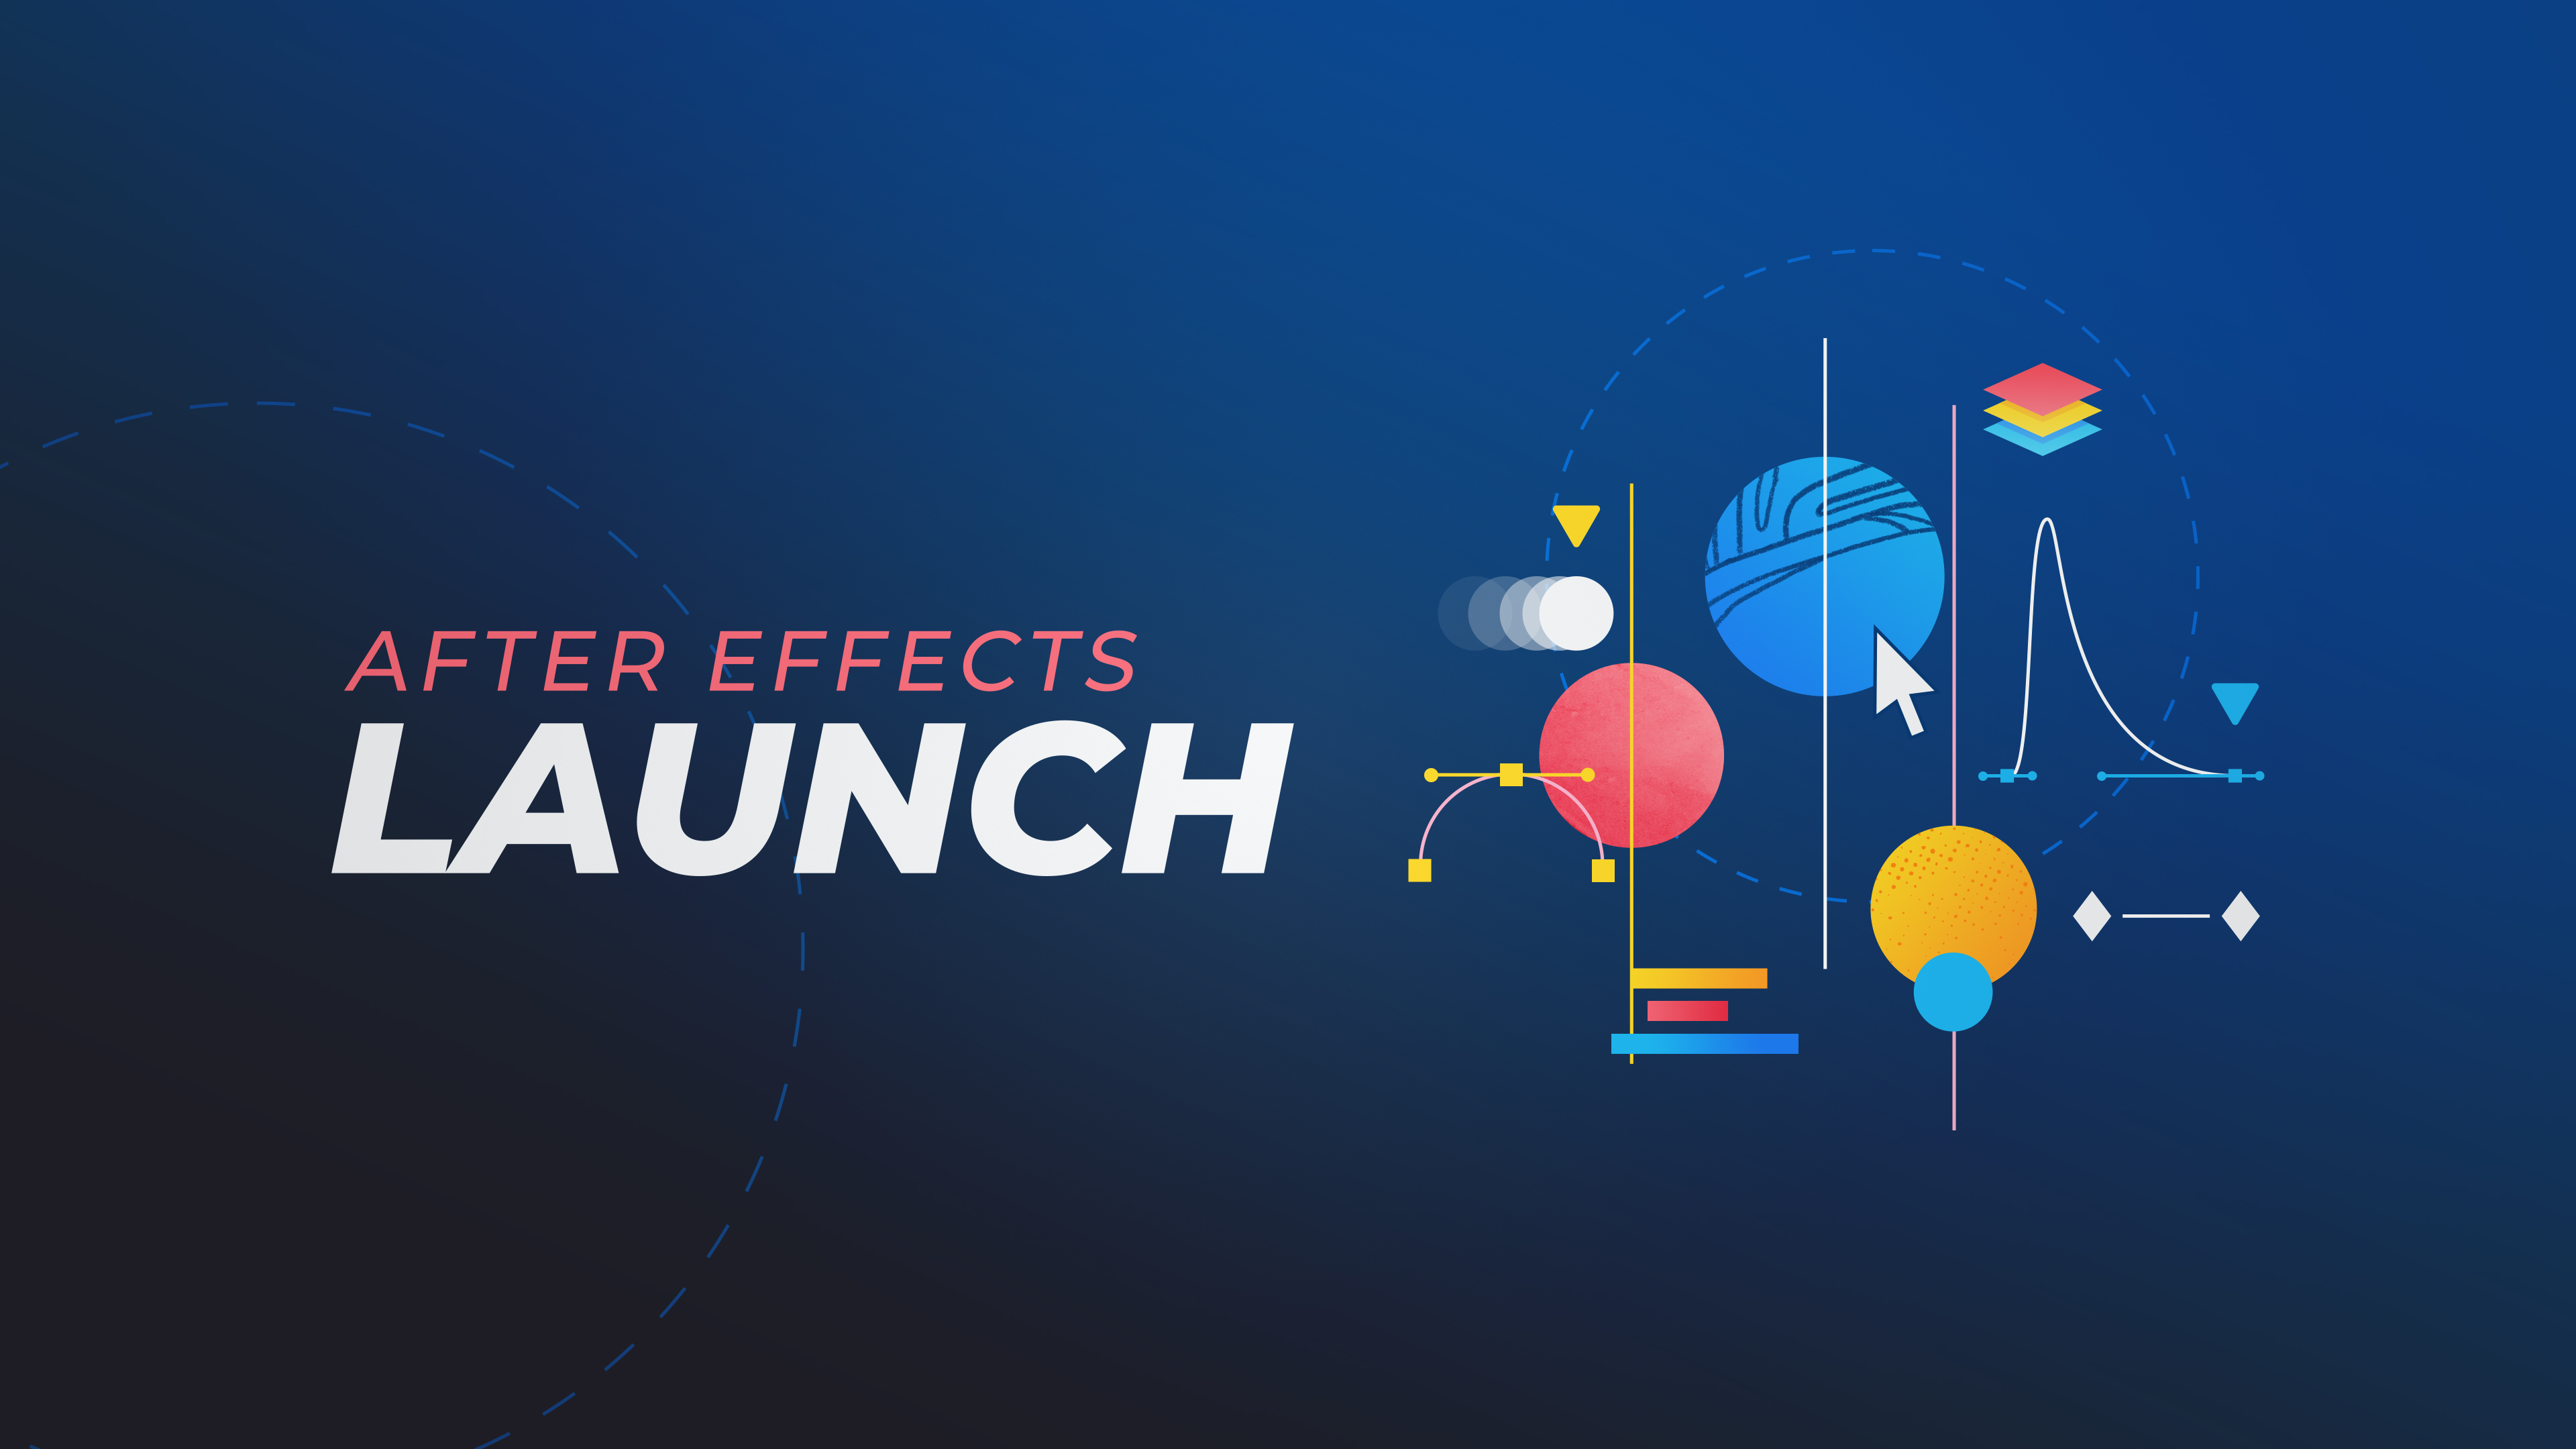 After Effects Launch